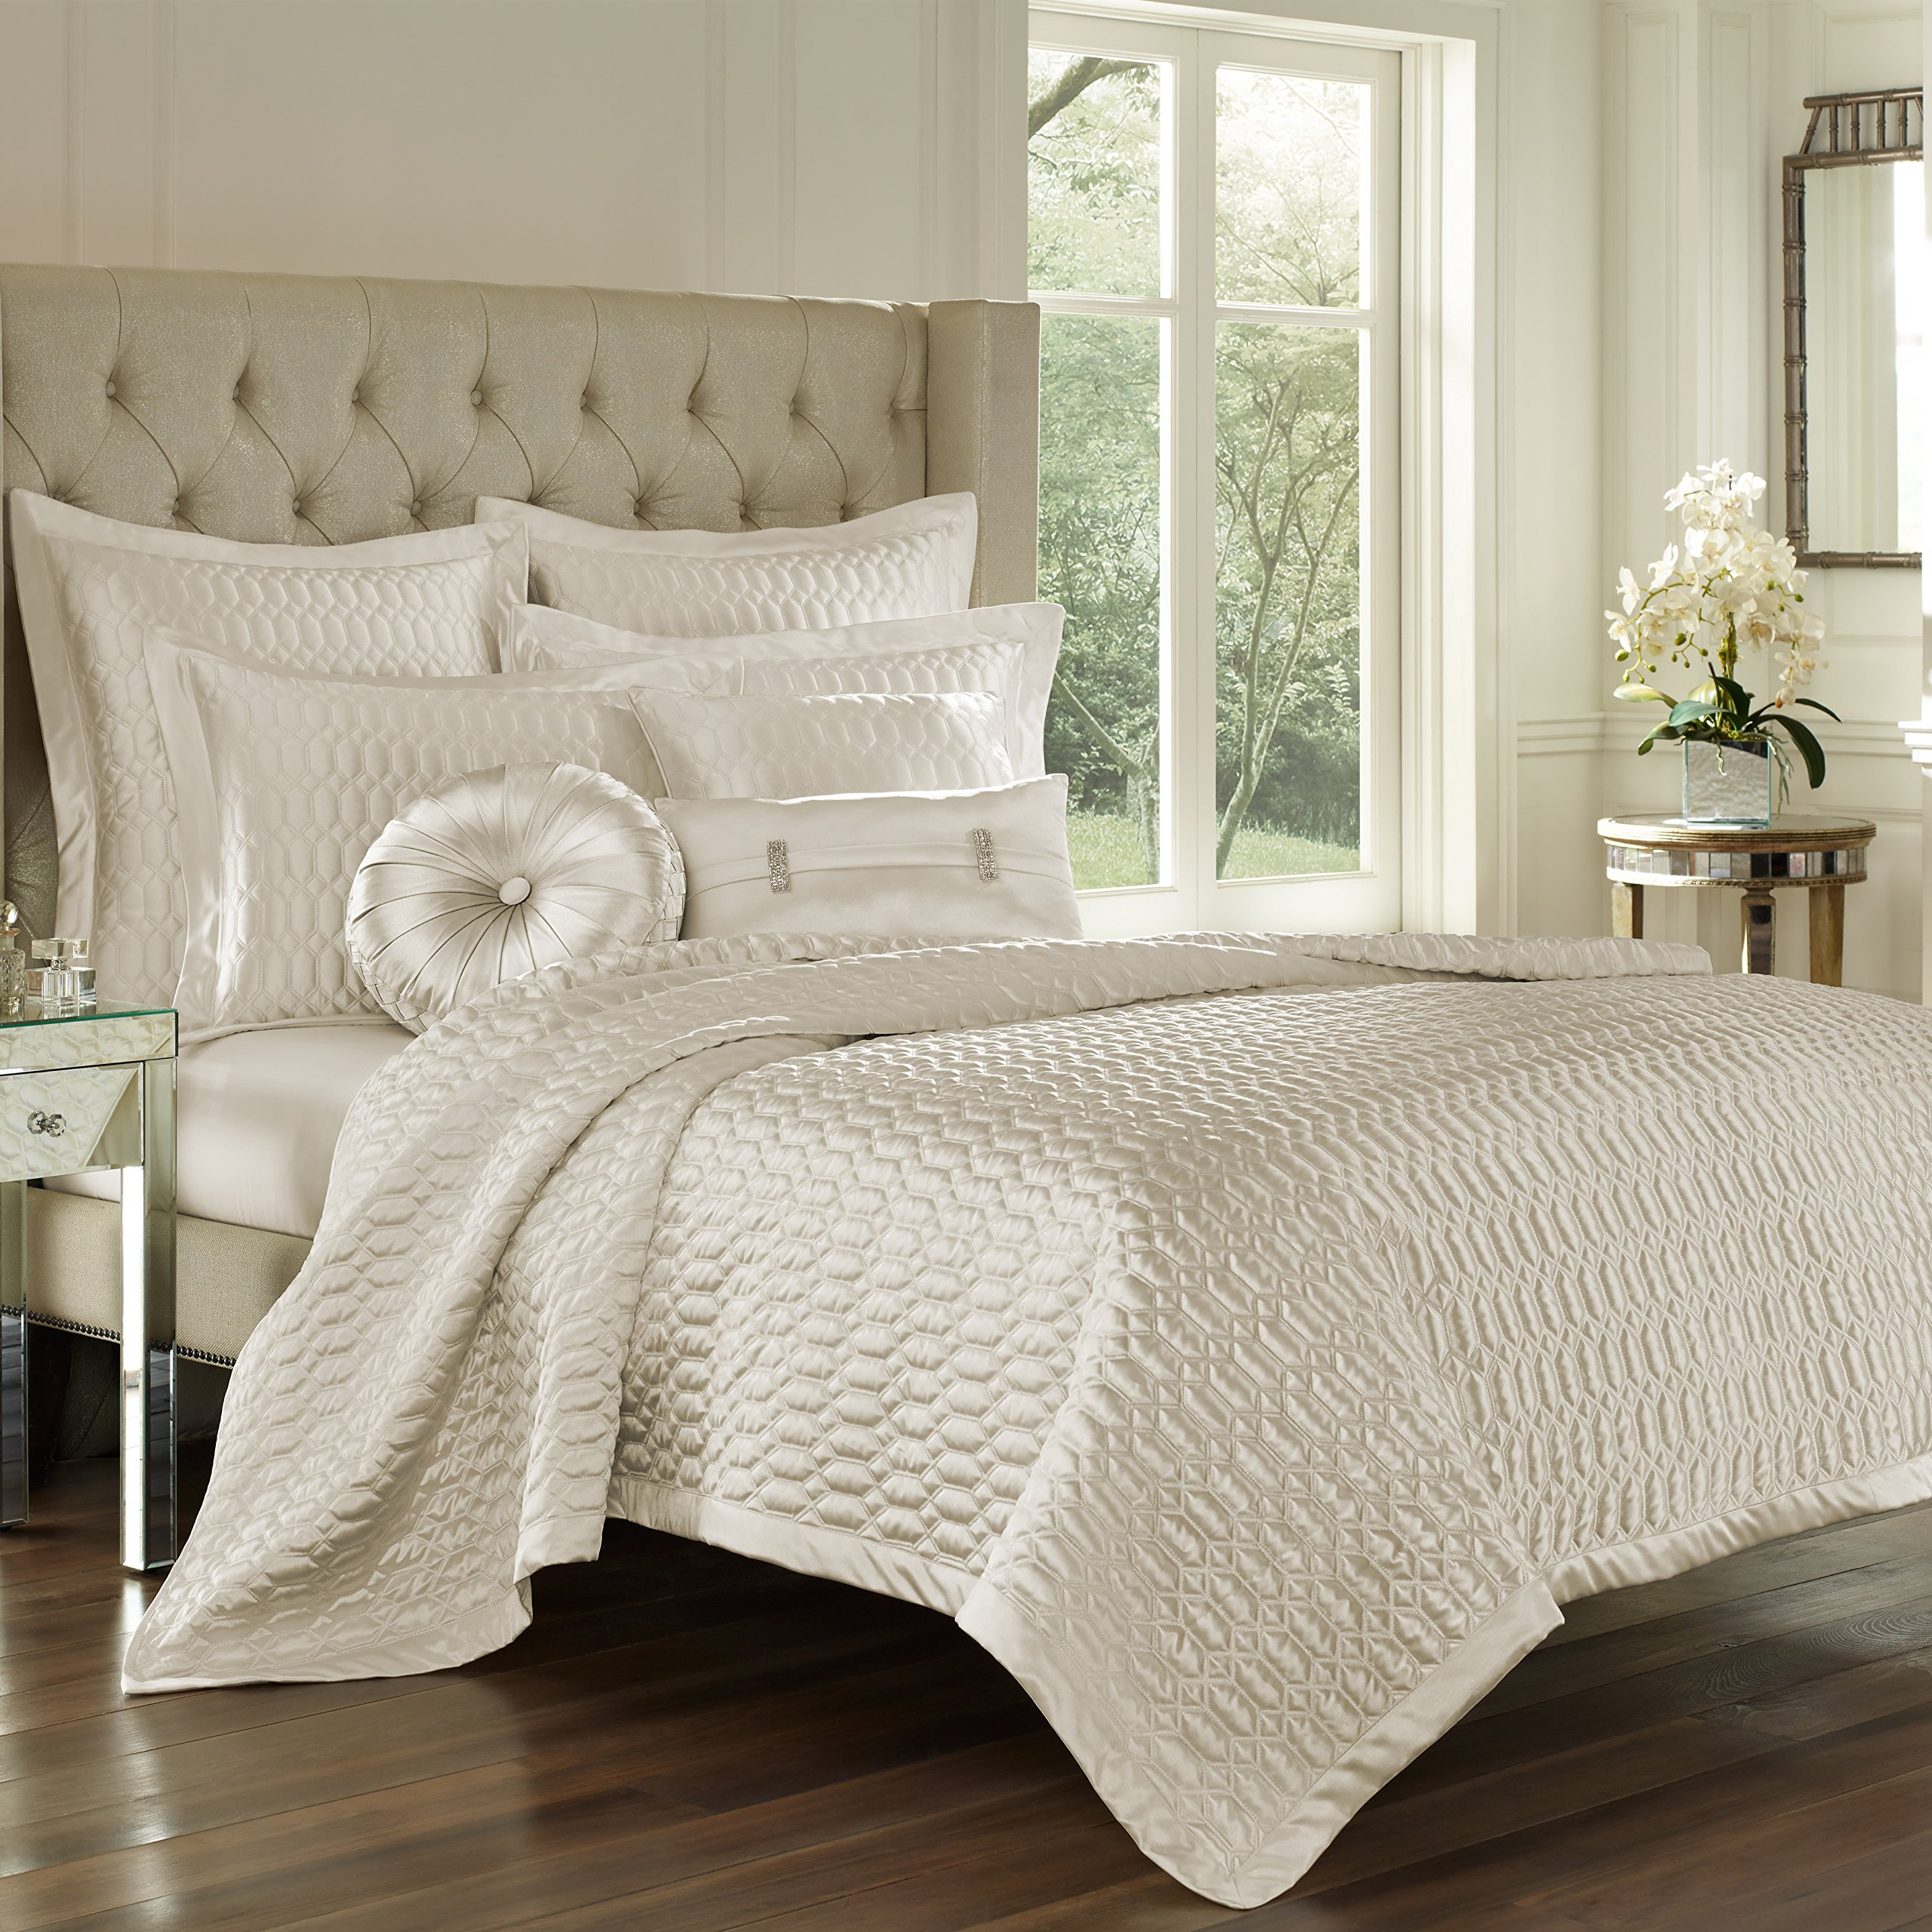 Five Queens Court Saranda Satin Geometric Quilted Coverlet King, Natural